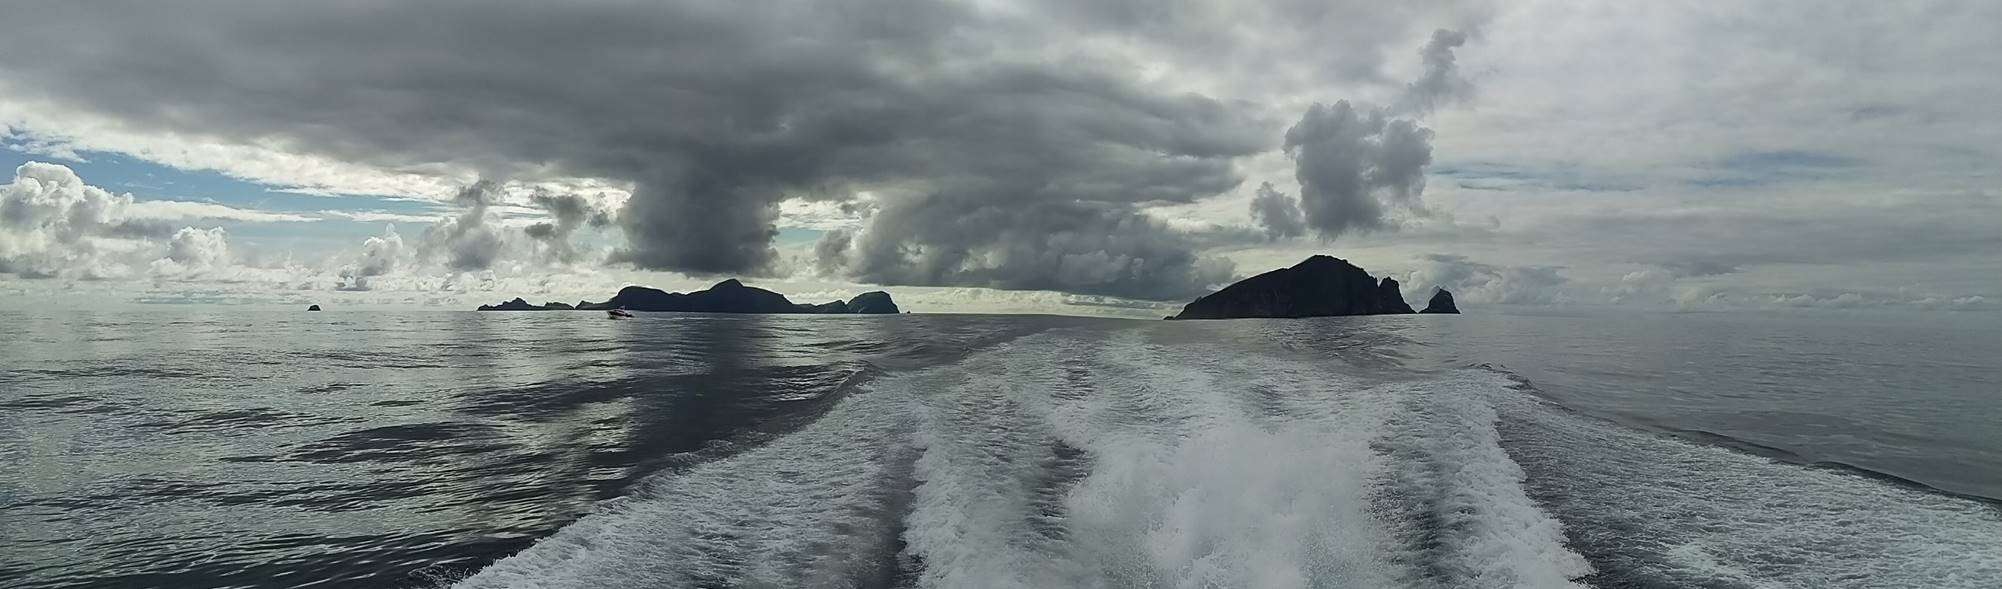 Racing Ahead of the Storm